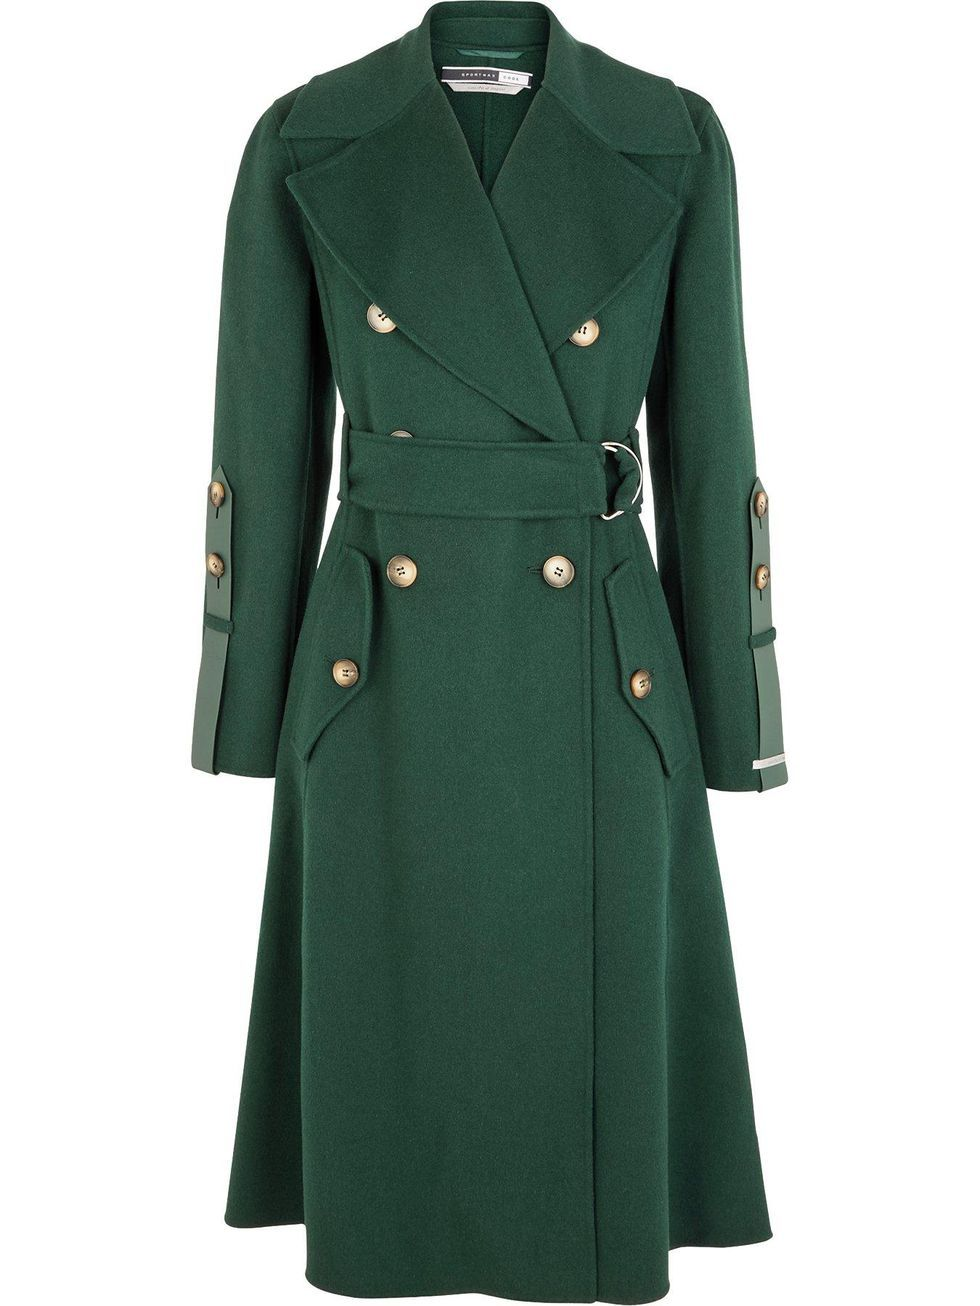 b5c35b2f4 100 of the best winter coats for every budget